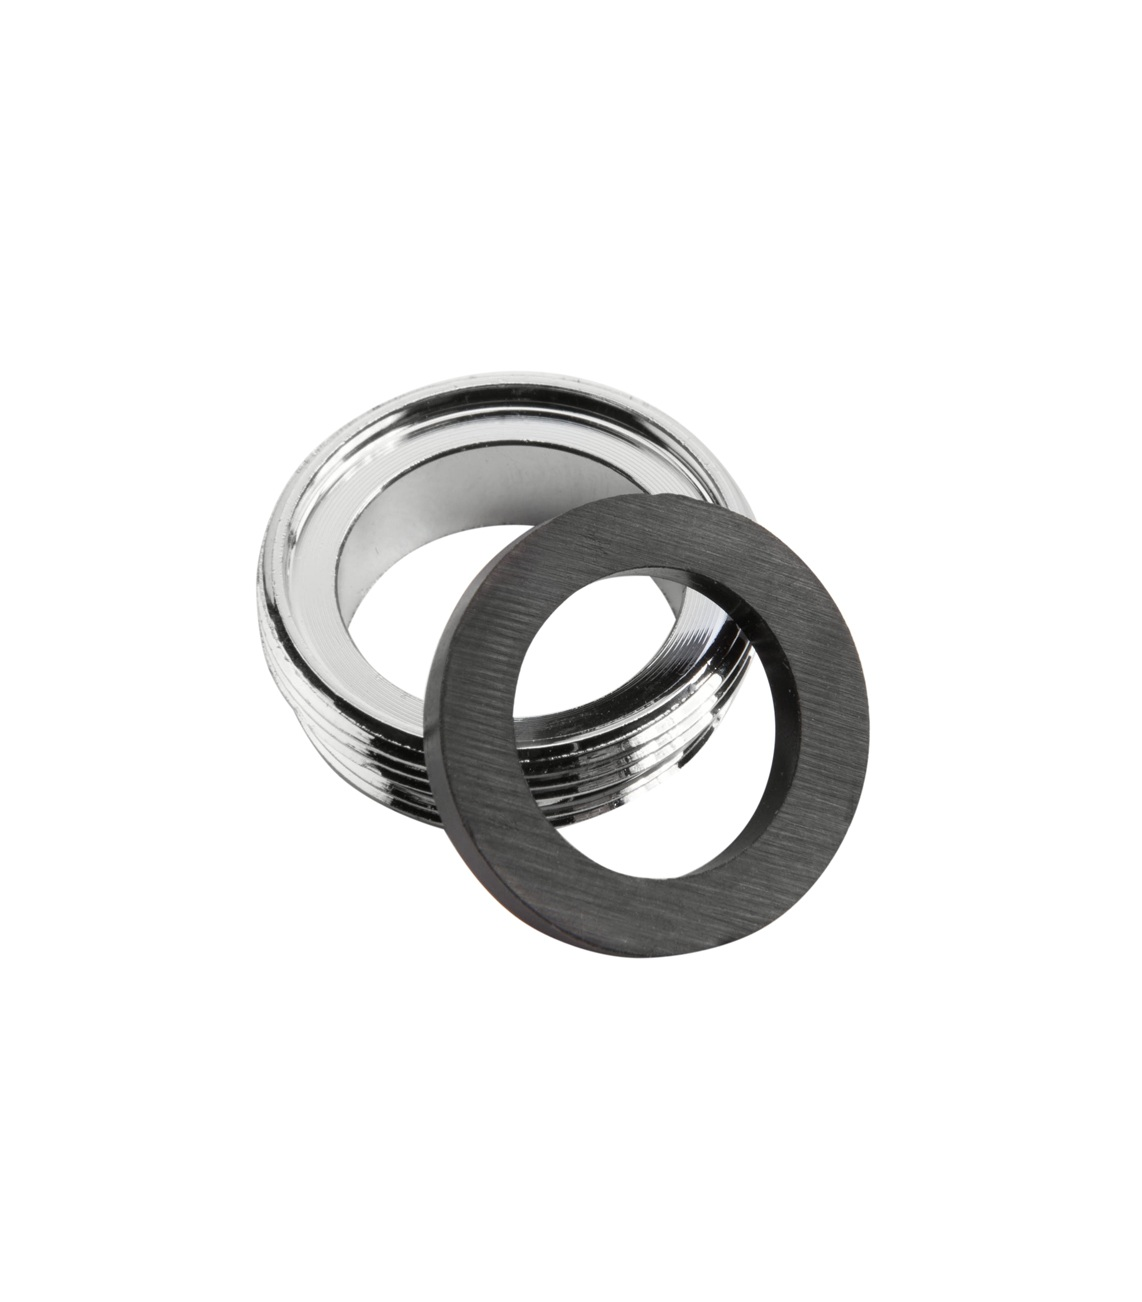 Male Thread Adapter For Aquaus Faucet Diverter Valves